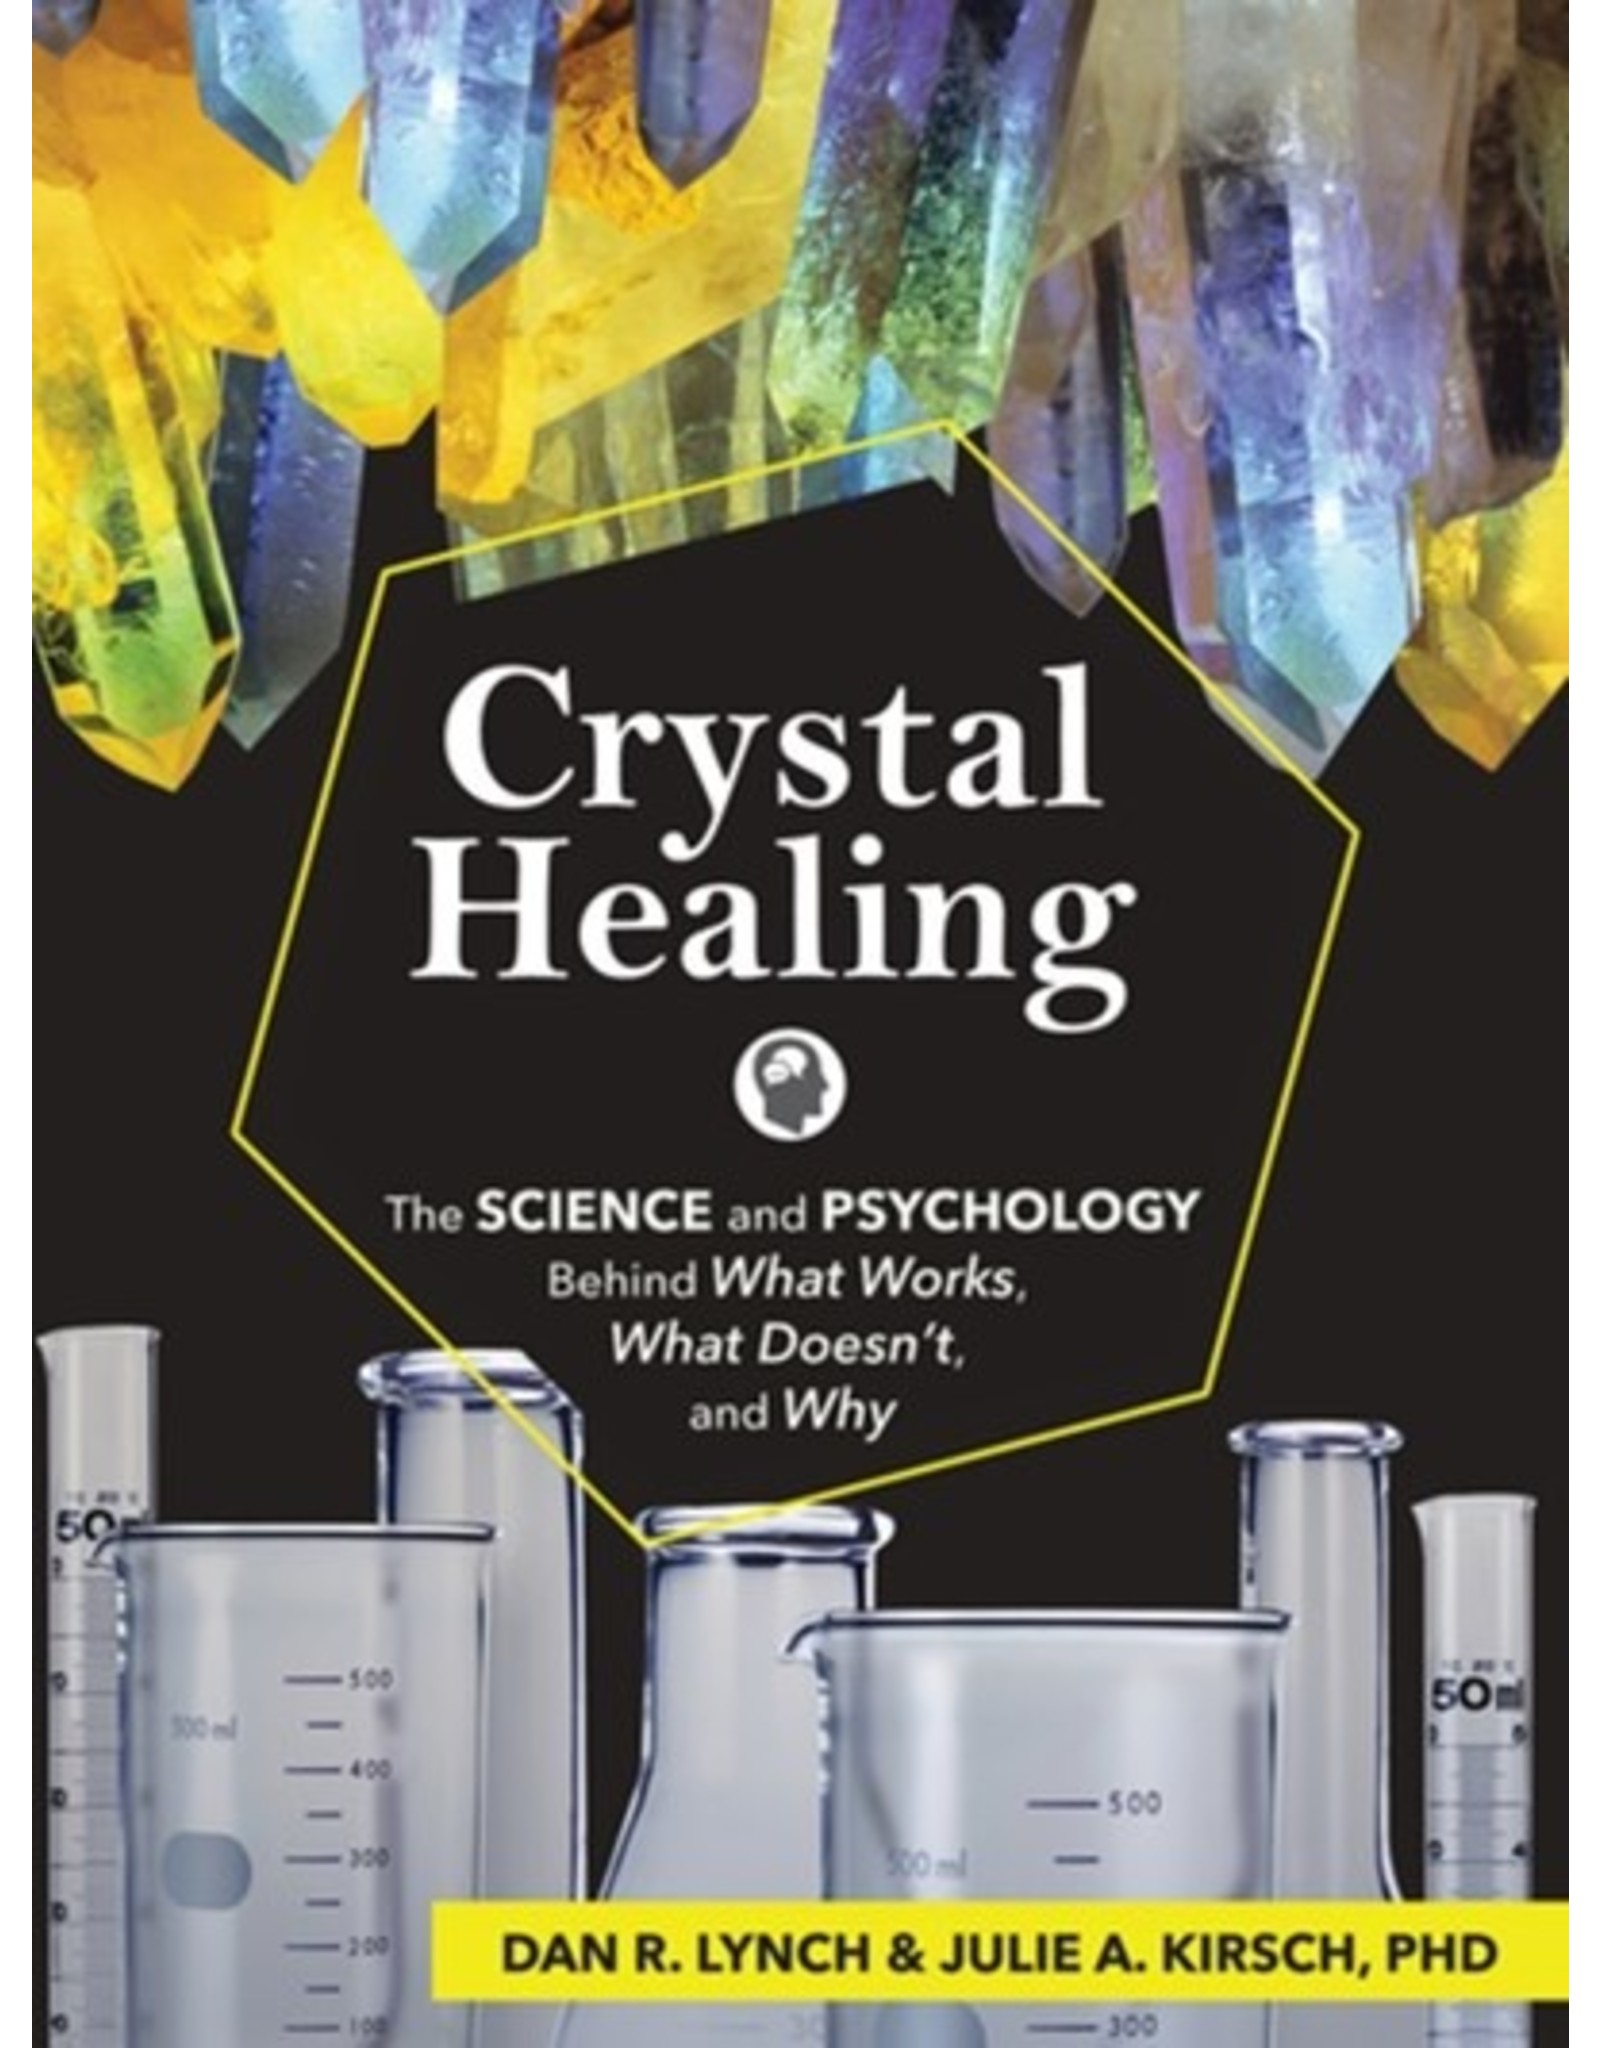 Books Crystal Healing: The Science and Psychology behind What Works, What Doesn't and Why by Dan R. Lynch & Julie  A Kirsch  Ph.D